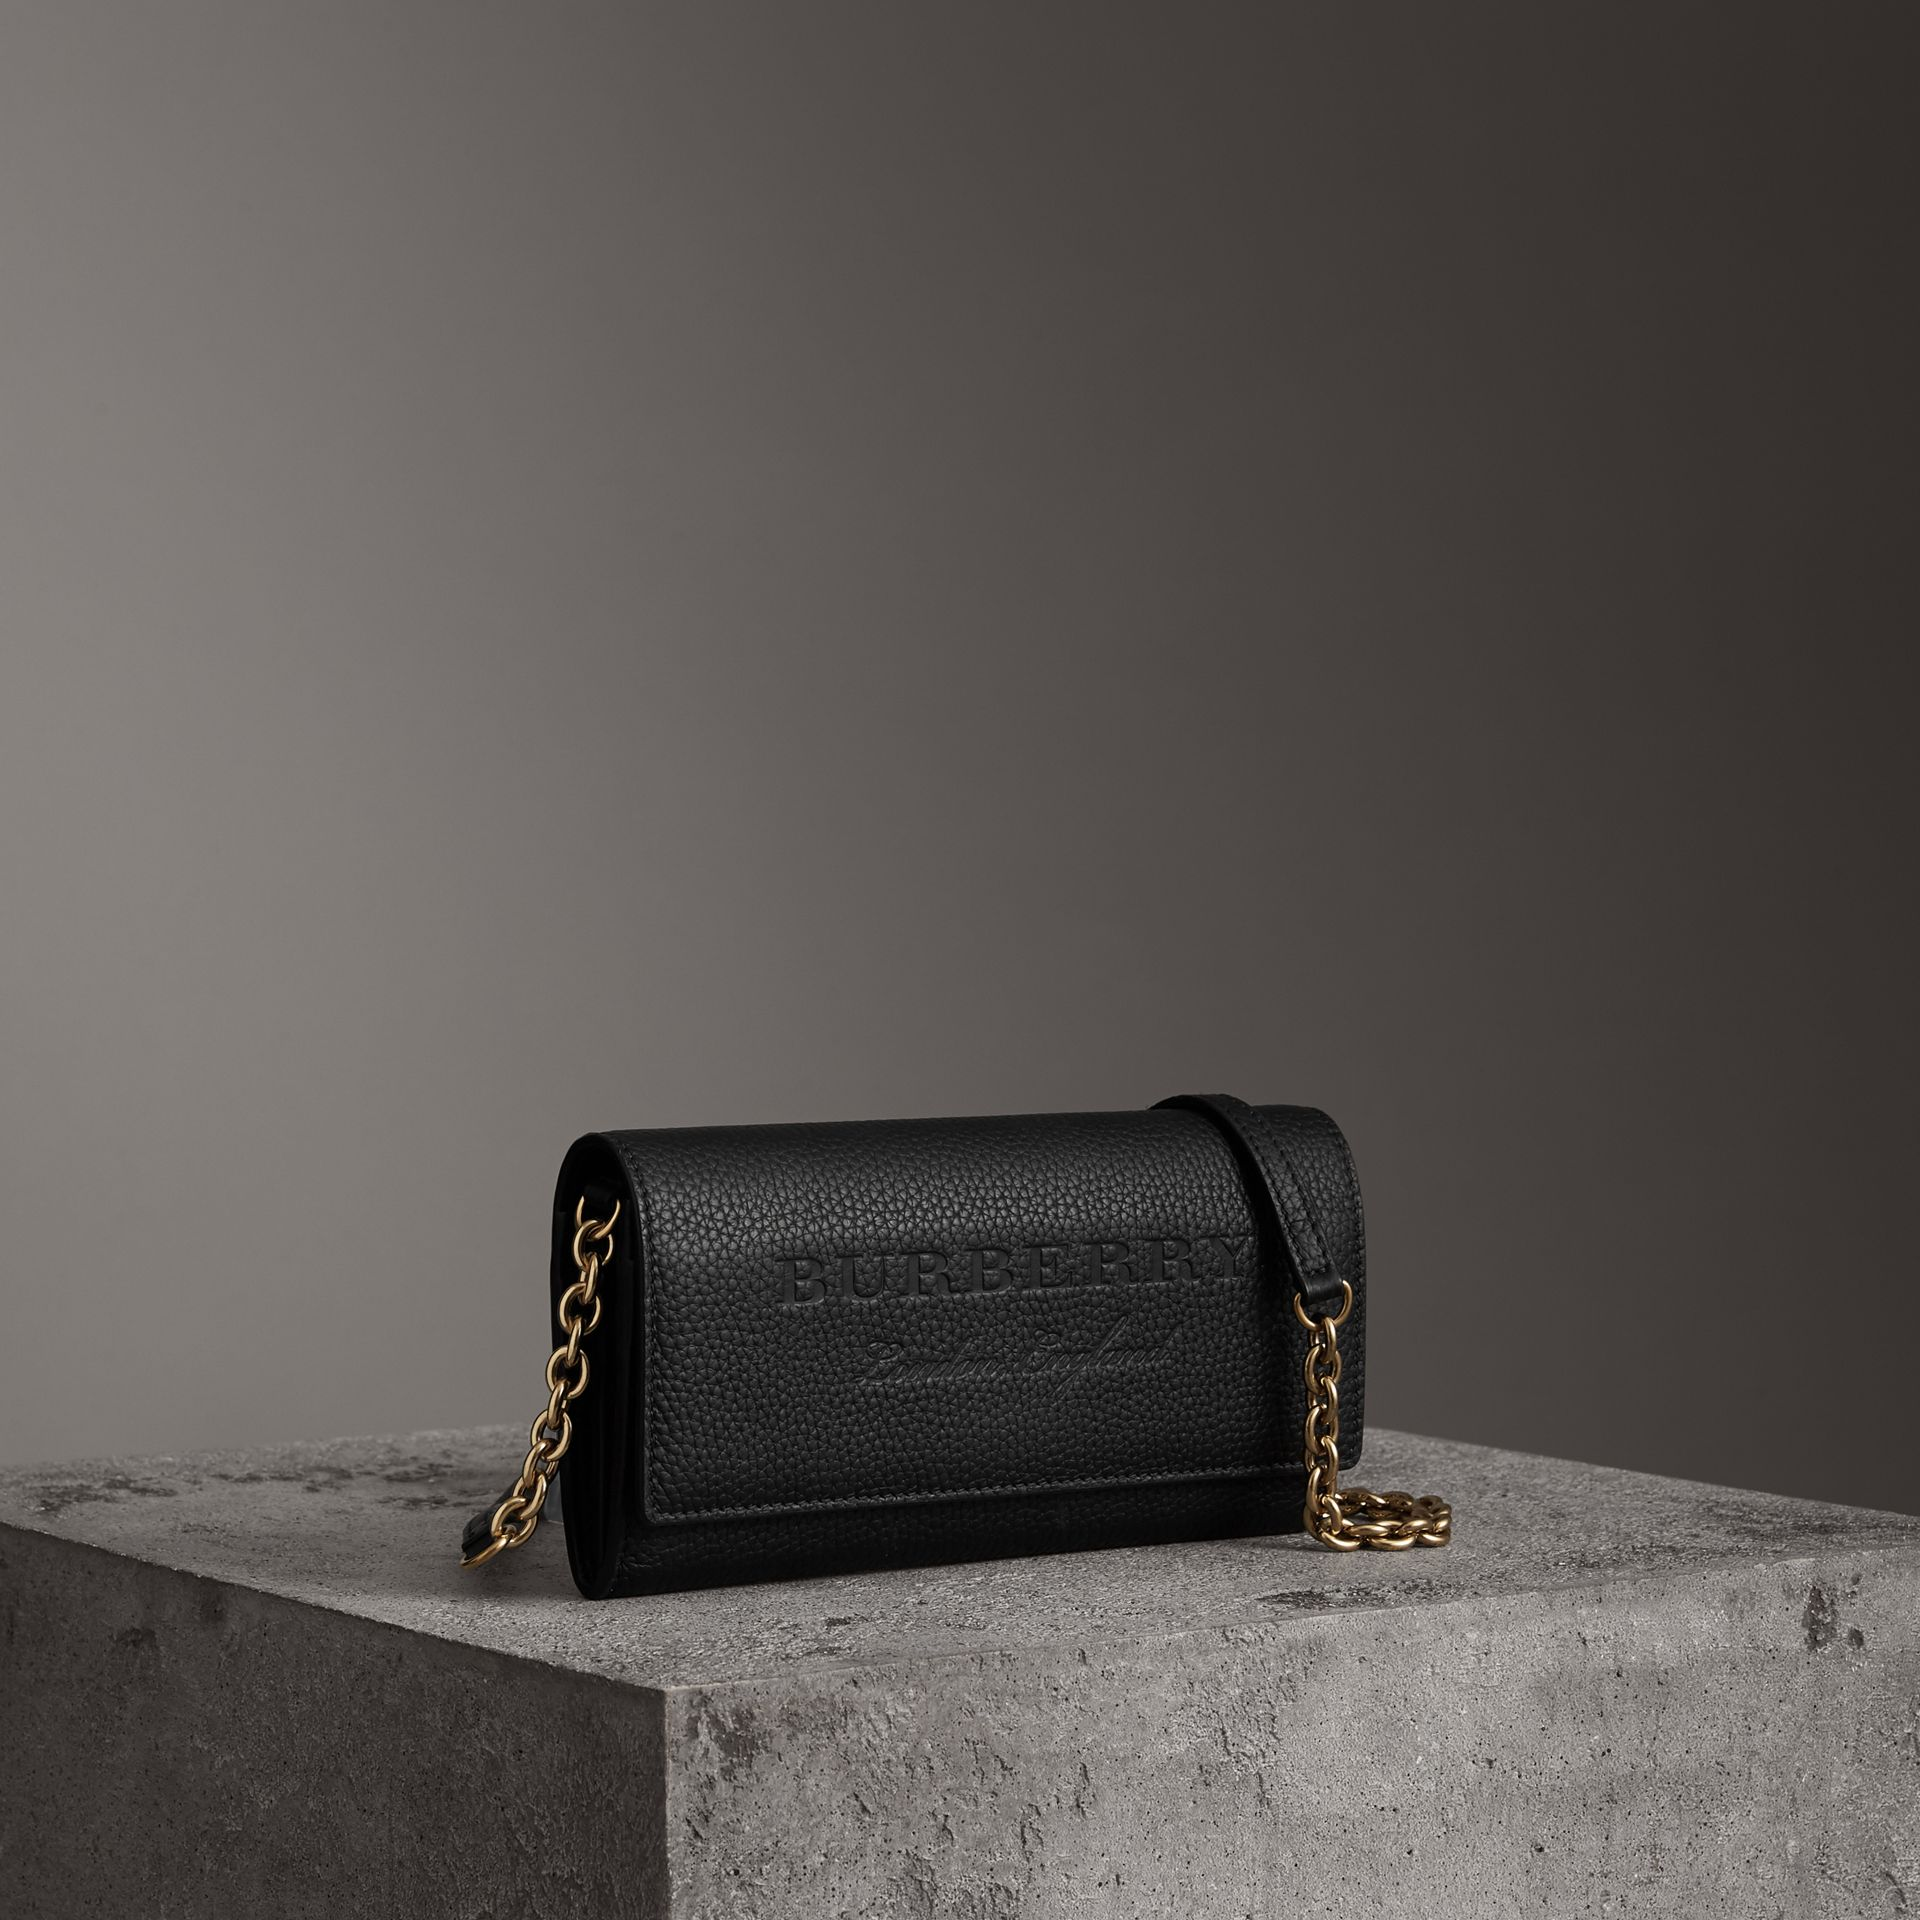 Embossed Leather Wallet with Chain in Black - Women | Burberry - gallery image 0